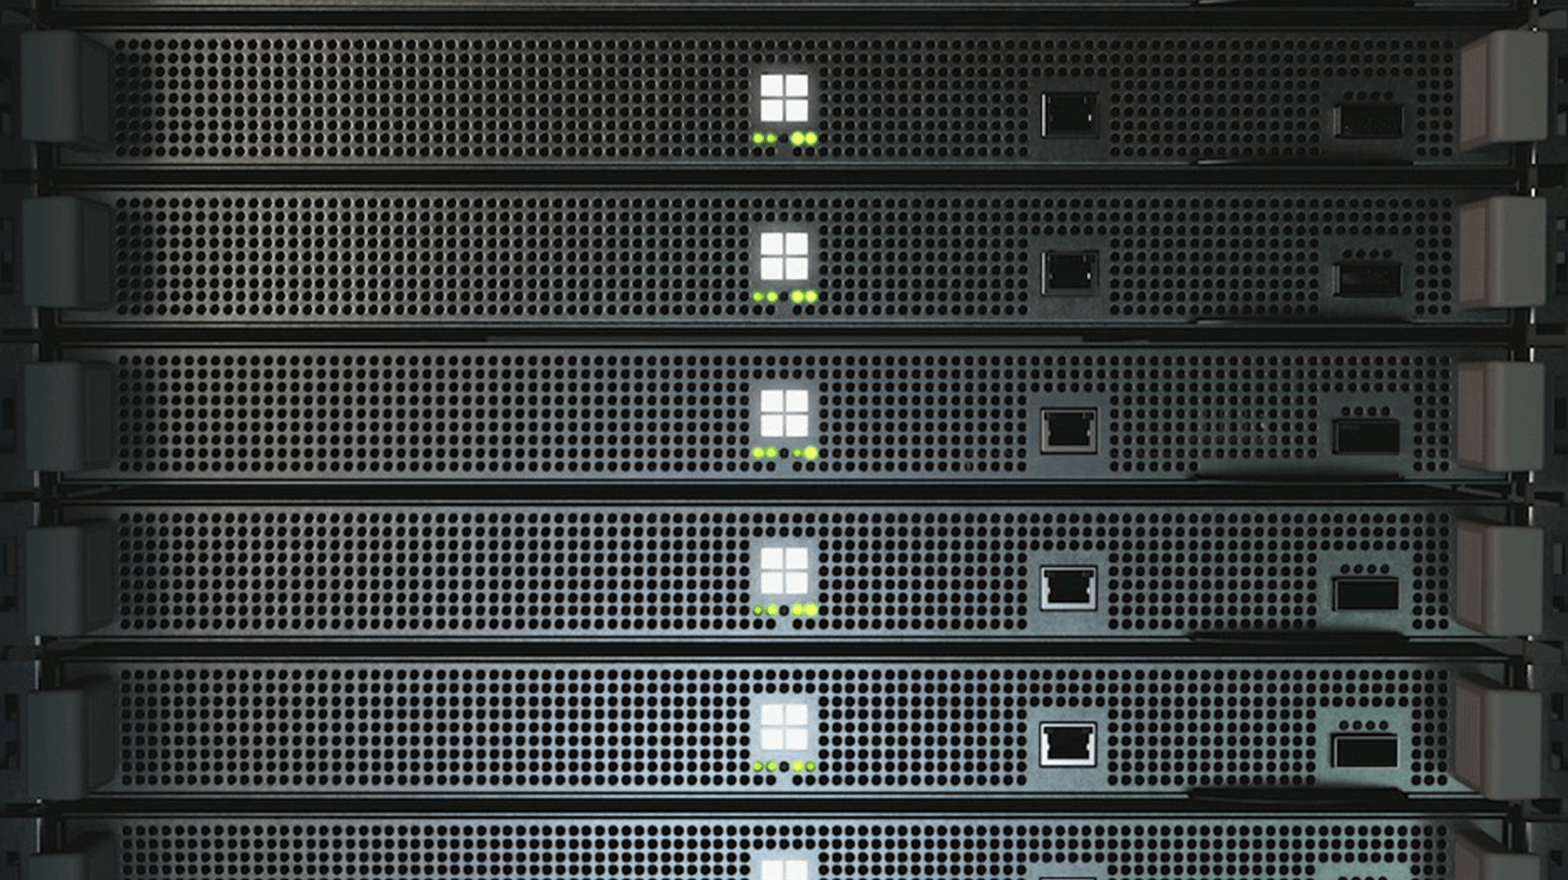 Project xCloud server blades in a stack